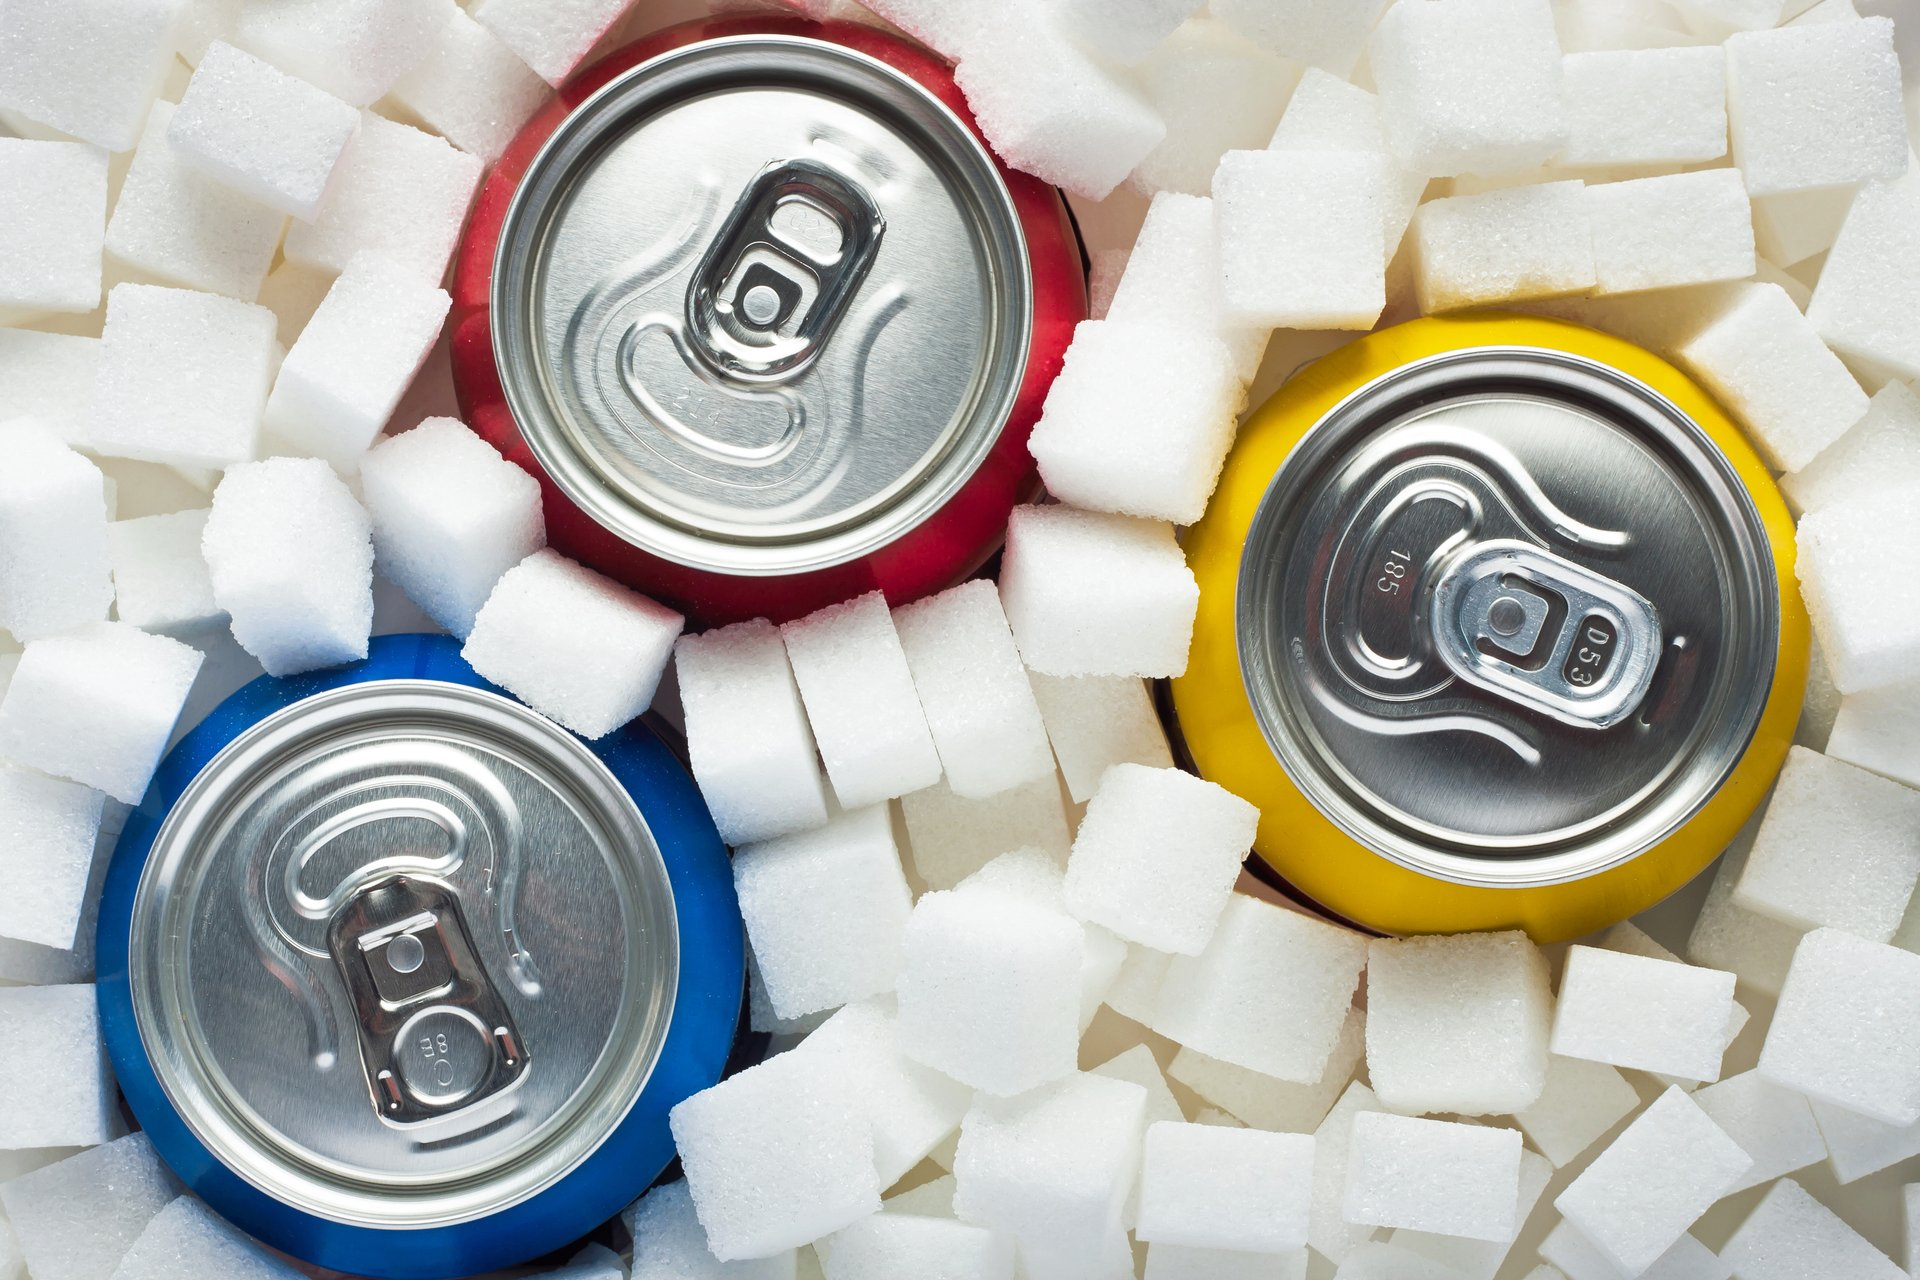 Soda cans surrounded by sugar